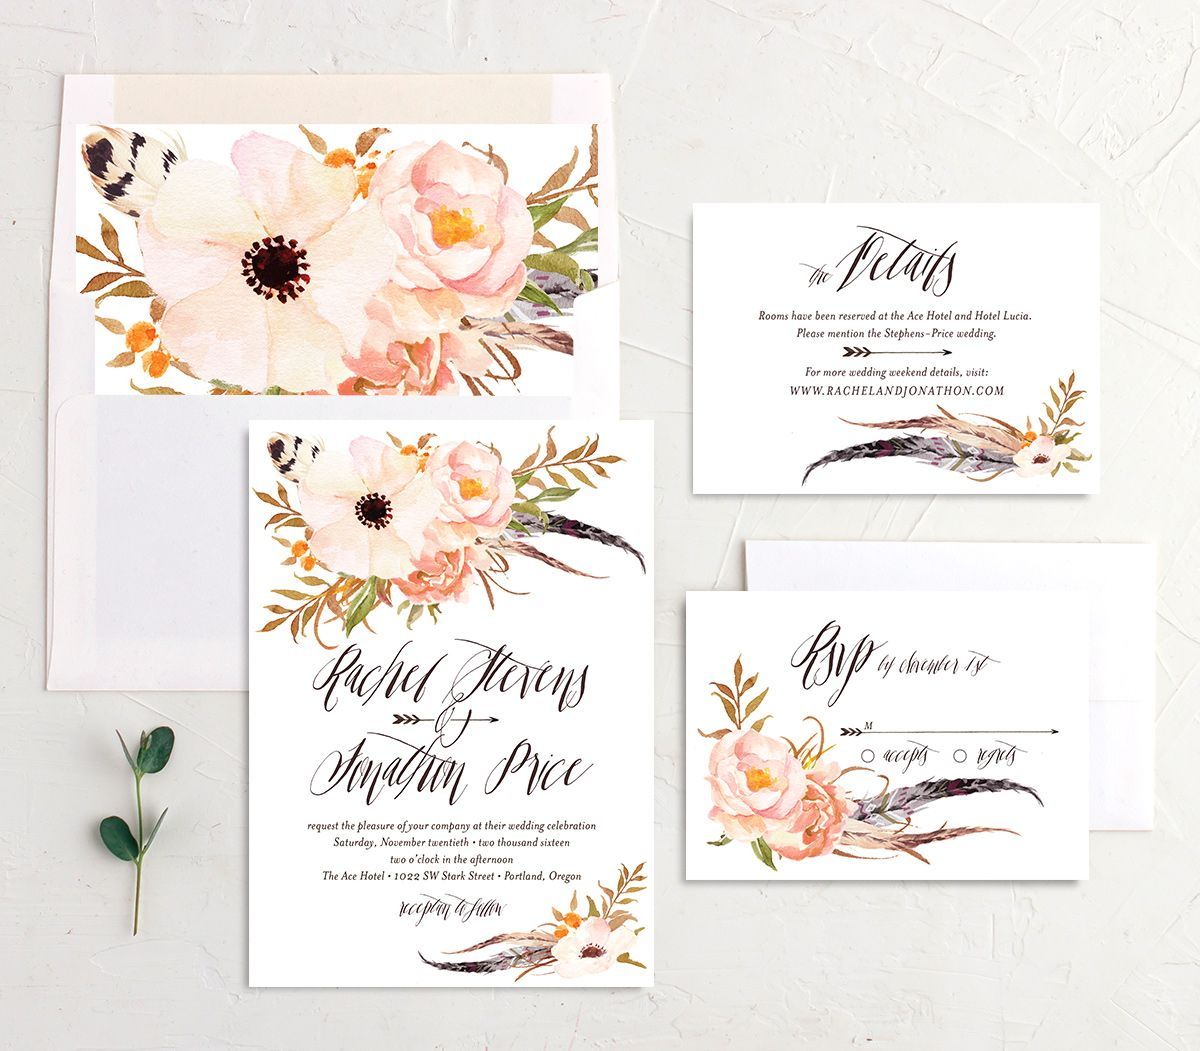 bohemian floral wedding invite stationery suite in peach